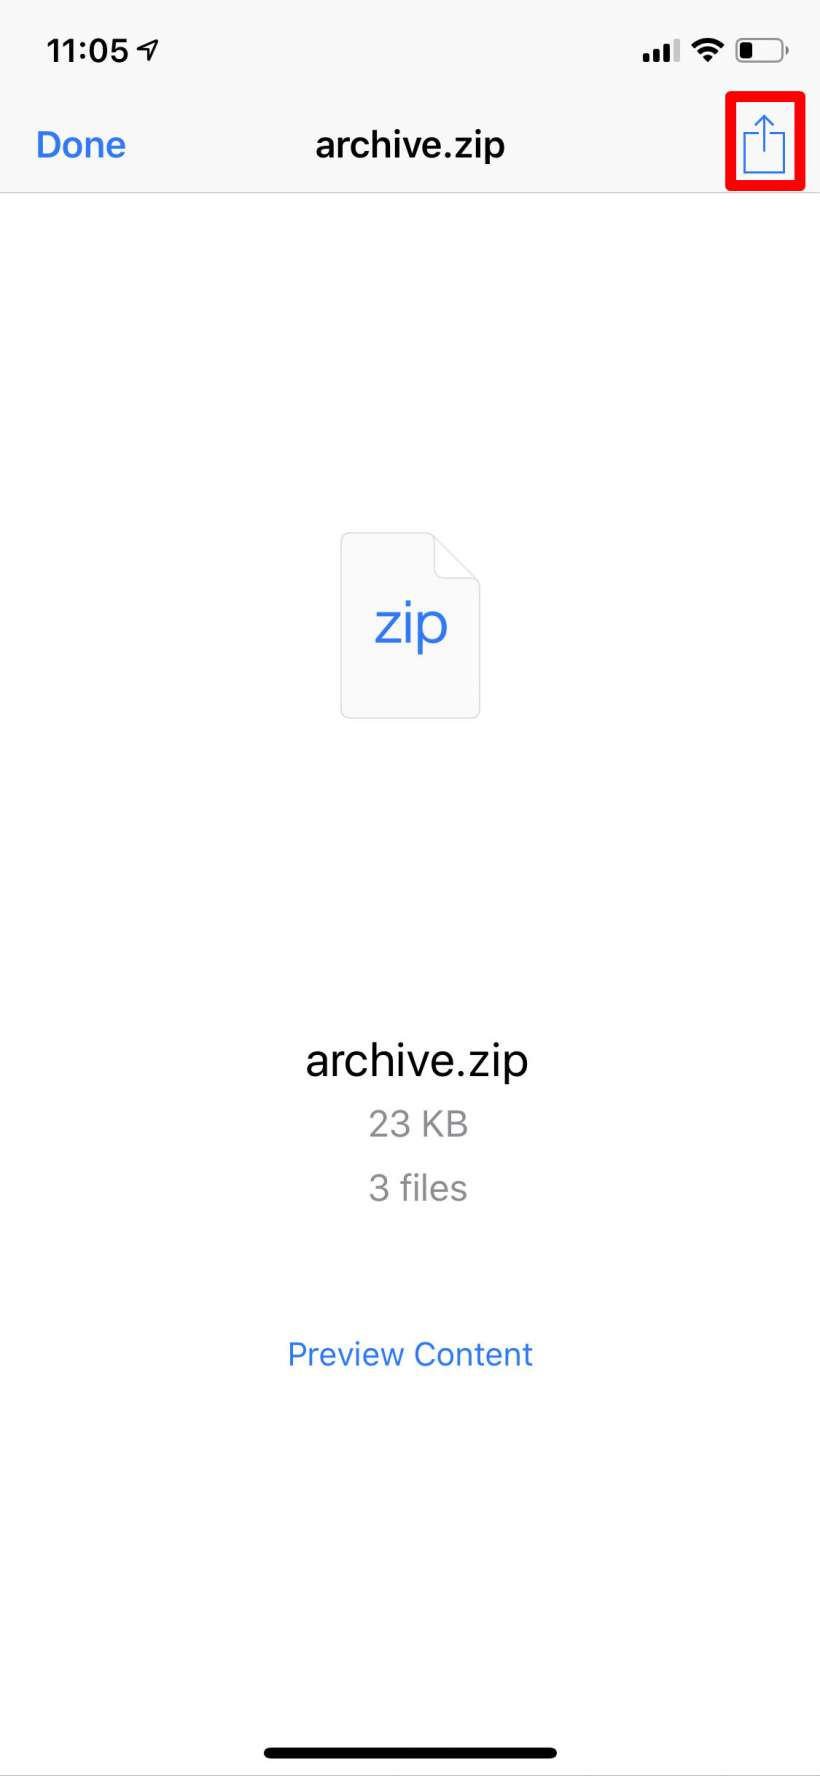 How to quickly extract zip files on your iPhone | The iPhone FAQ